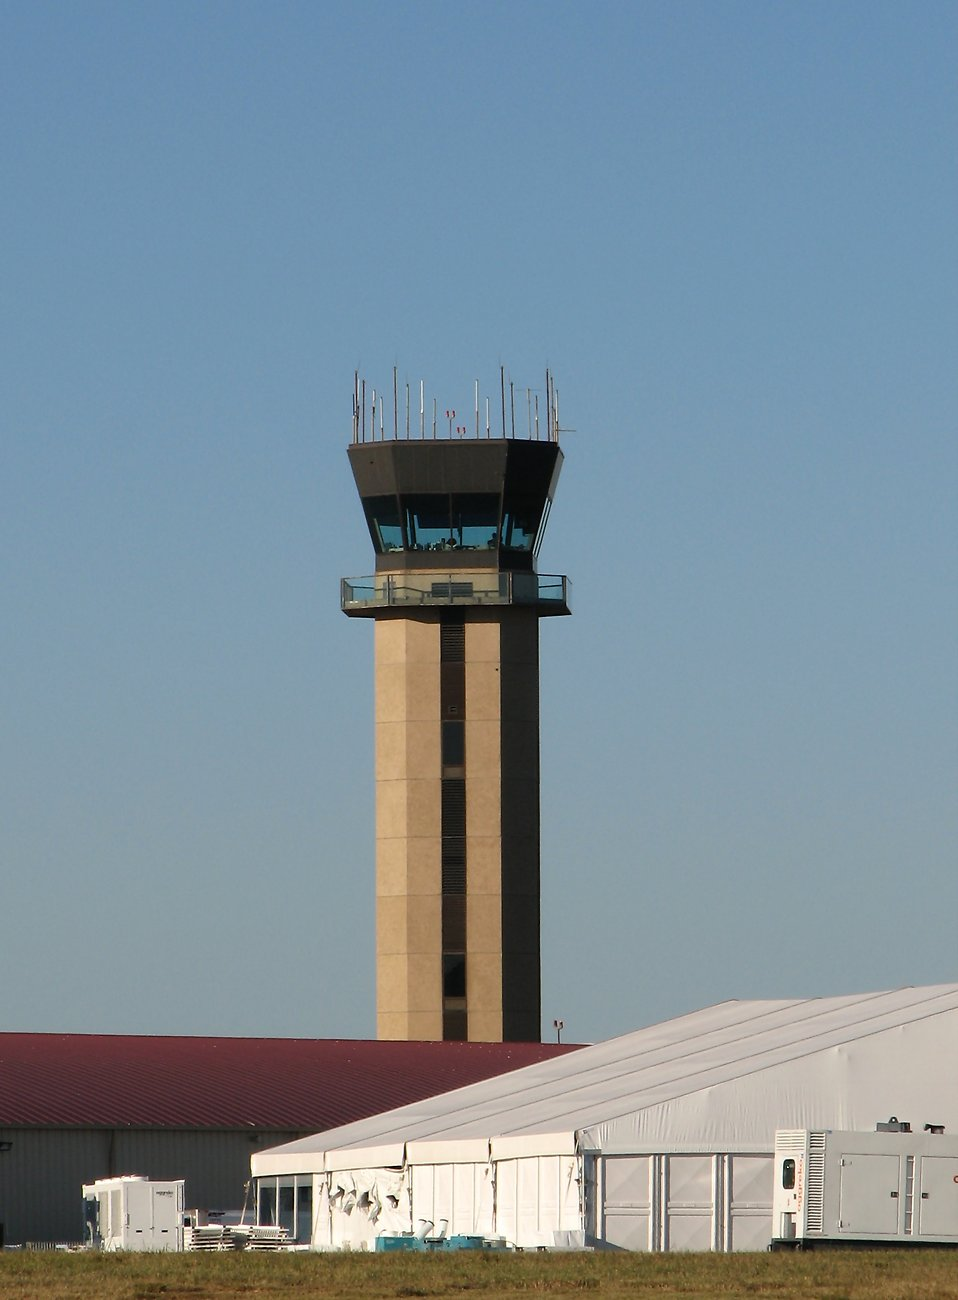 An air traffic control tower at a small airport : Free Stock Photo